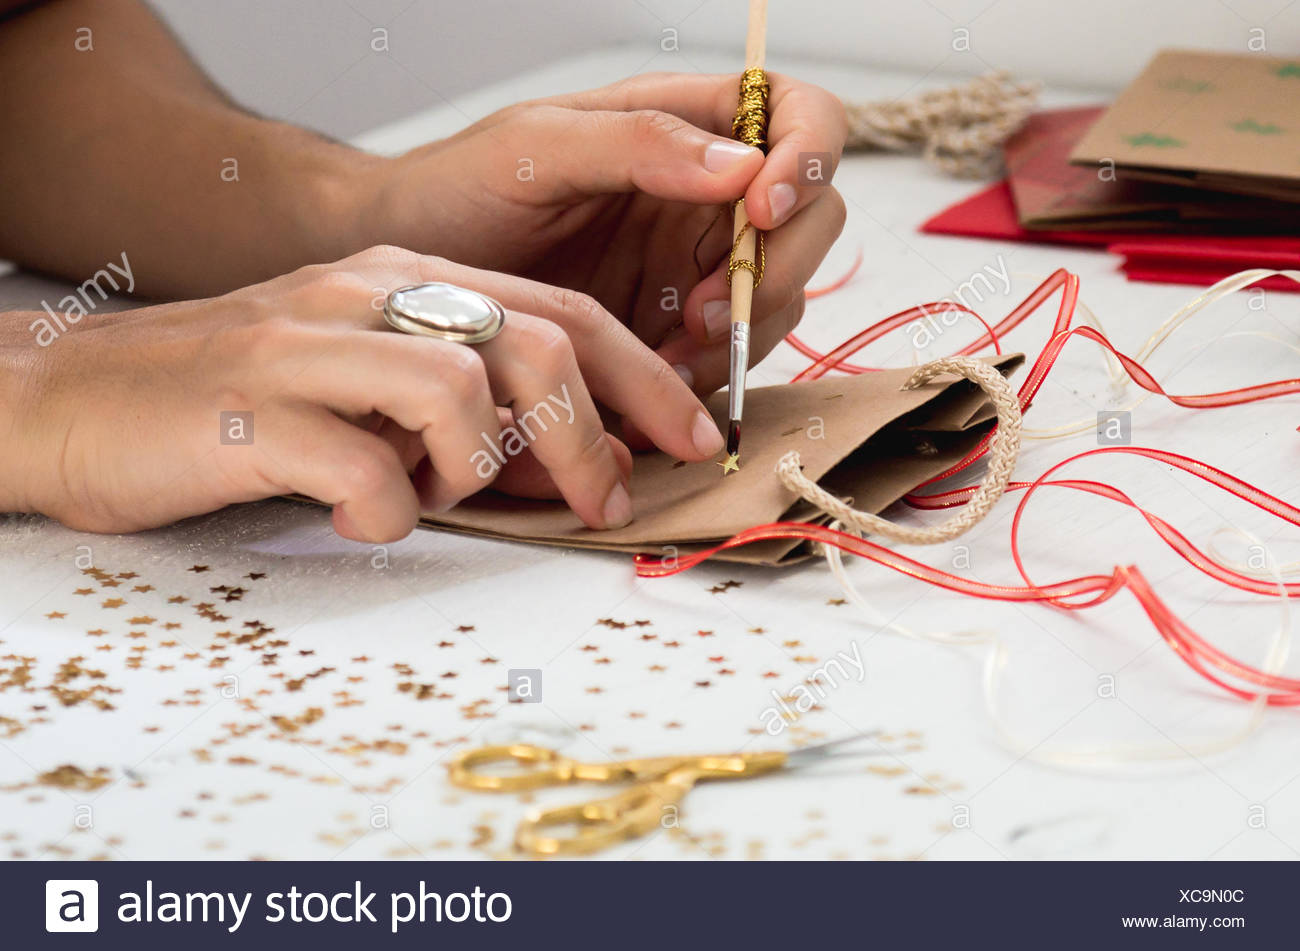 Cropped Image Of Hand Decorating Paper Bag On Table Stock Photo